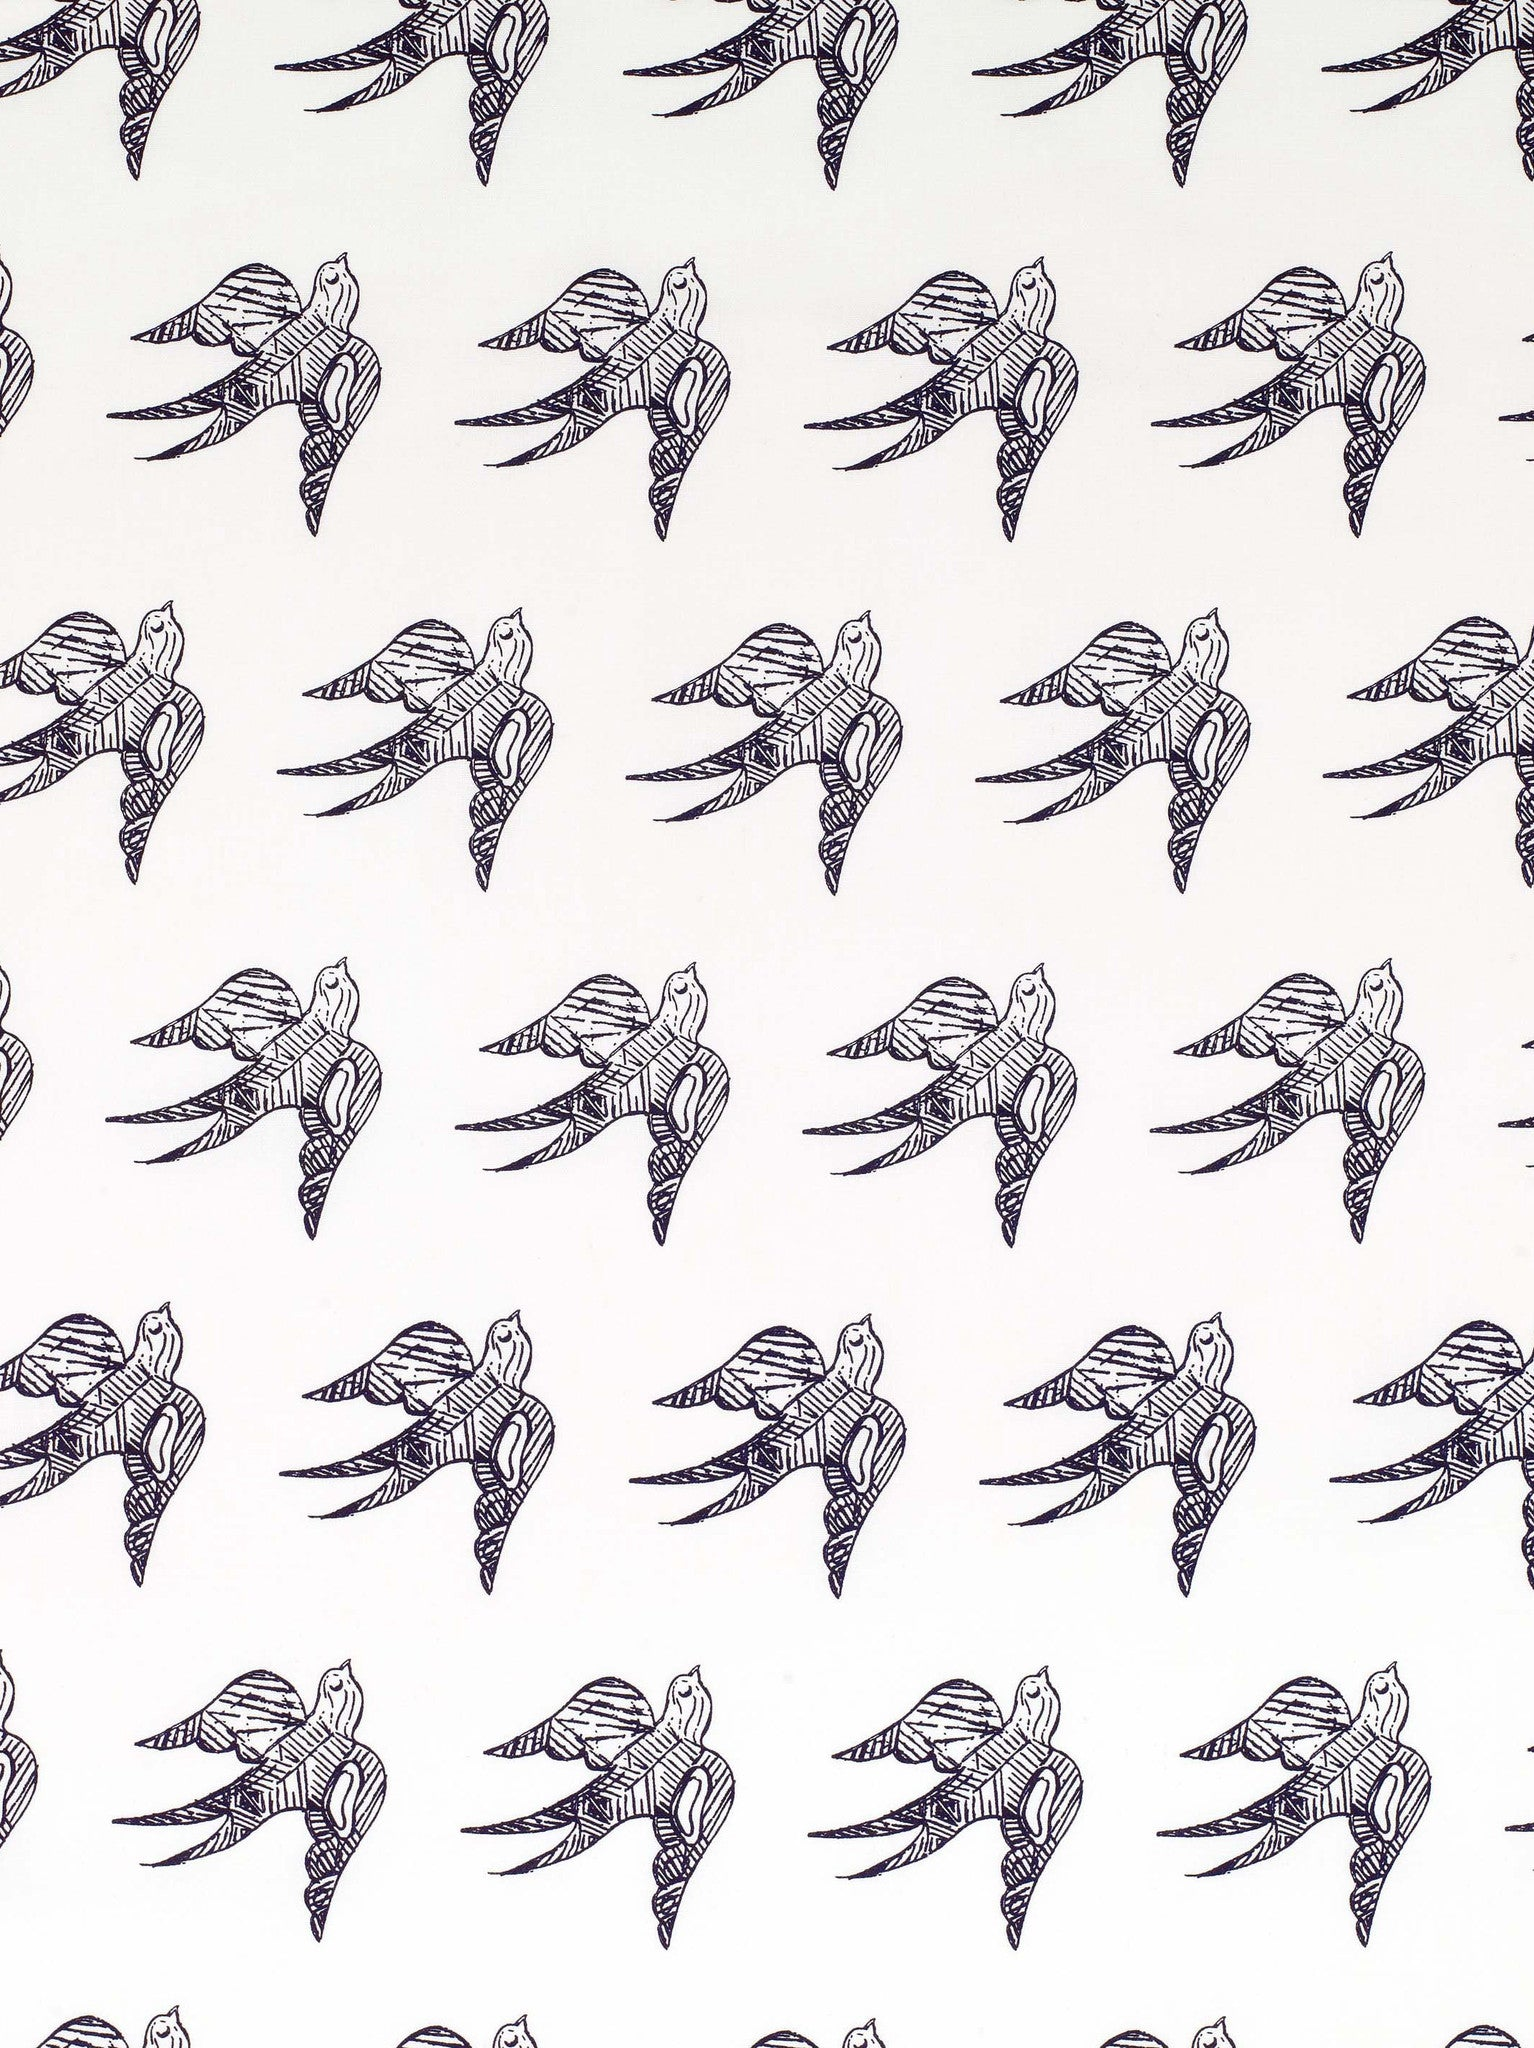 Katia Swallow Bird Pattern Linen Cotton Home Decor Fabric by the Meter or by the yard in Aubergine Purple for curtains, blinds, upholstery ships form Canada (USA)